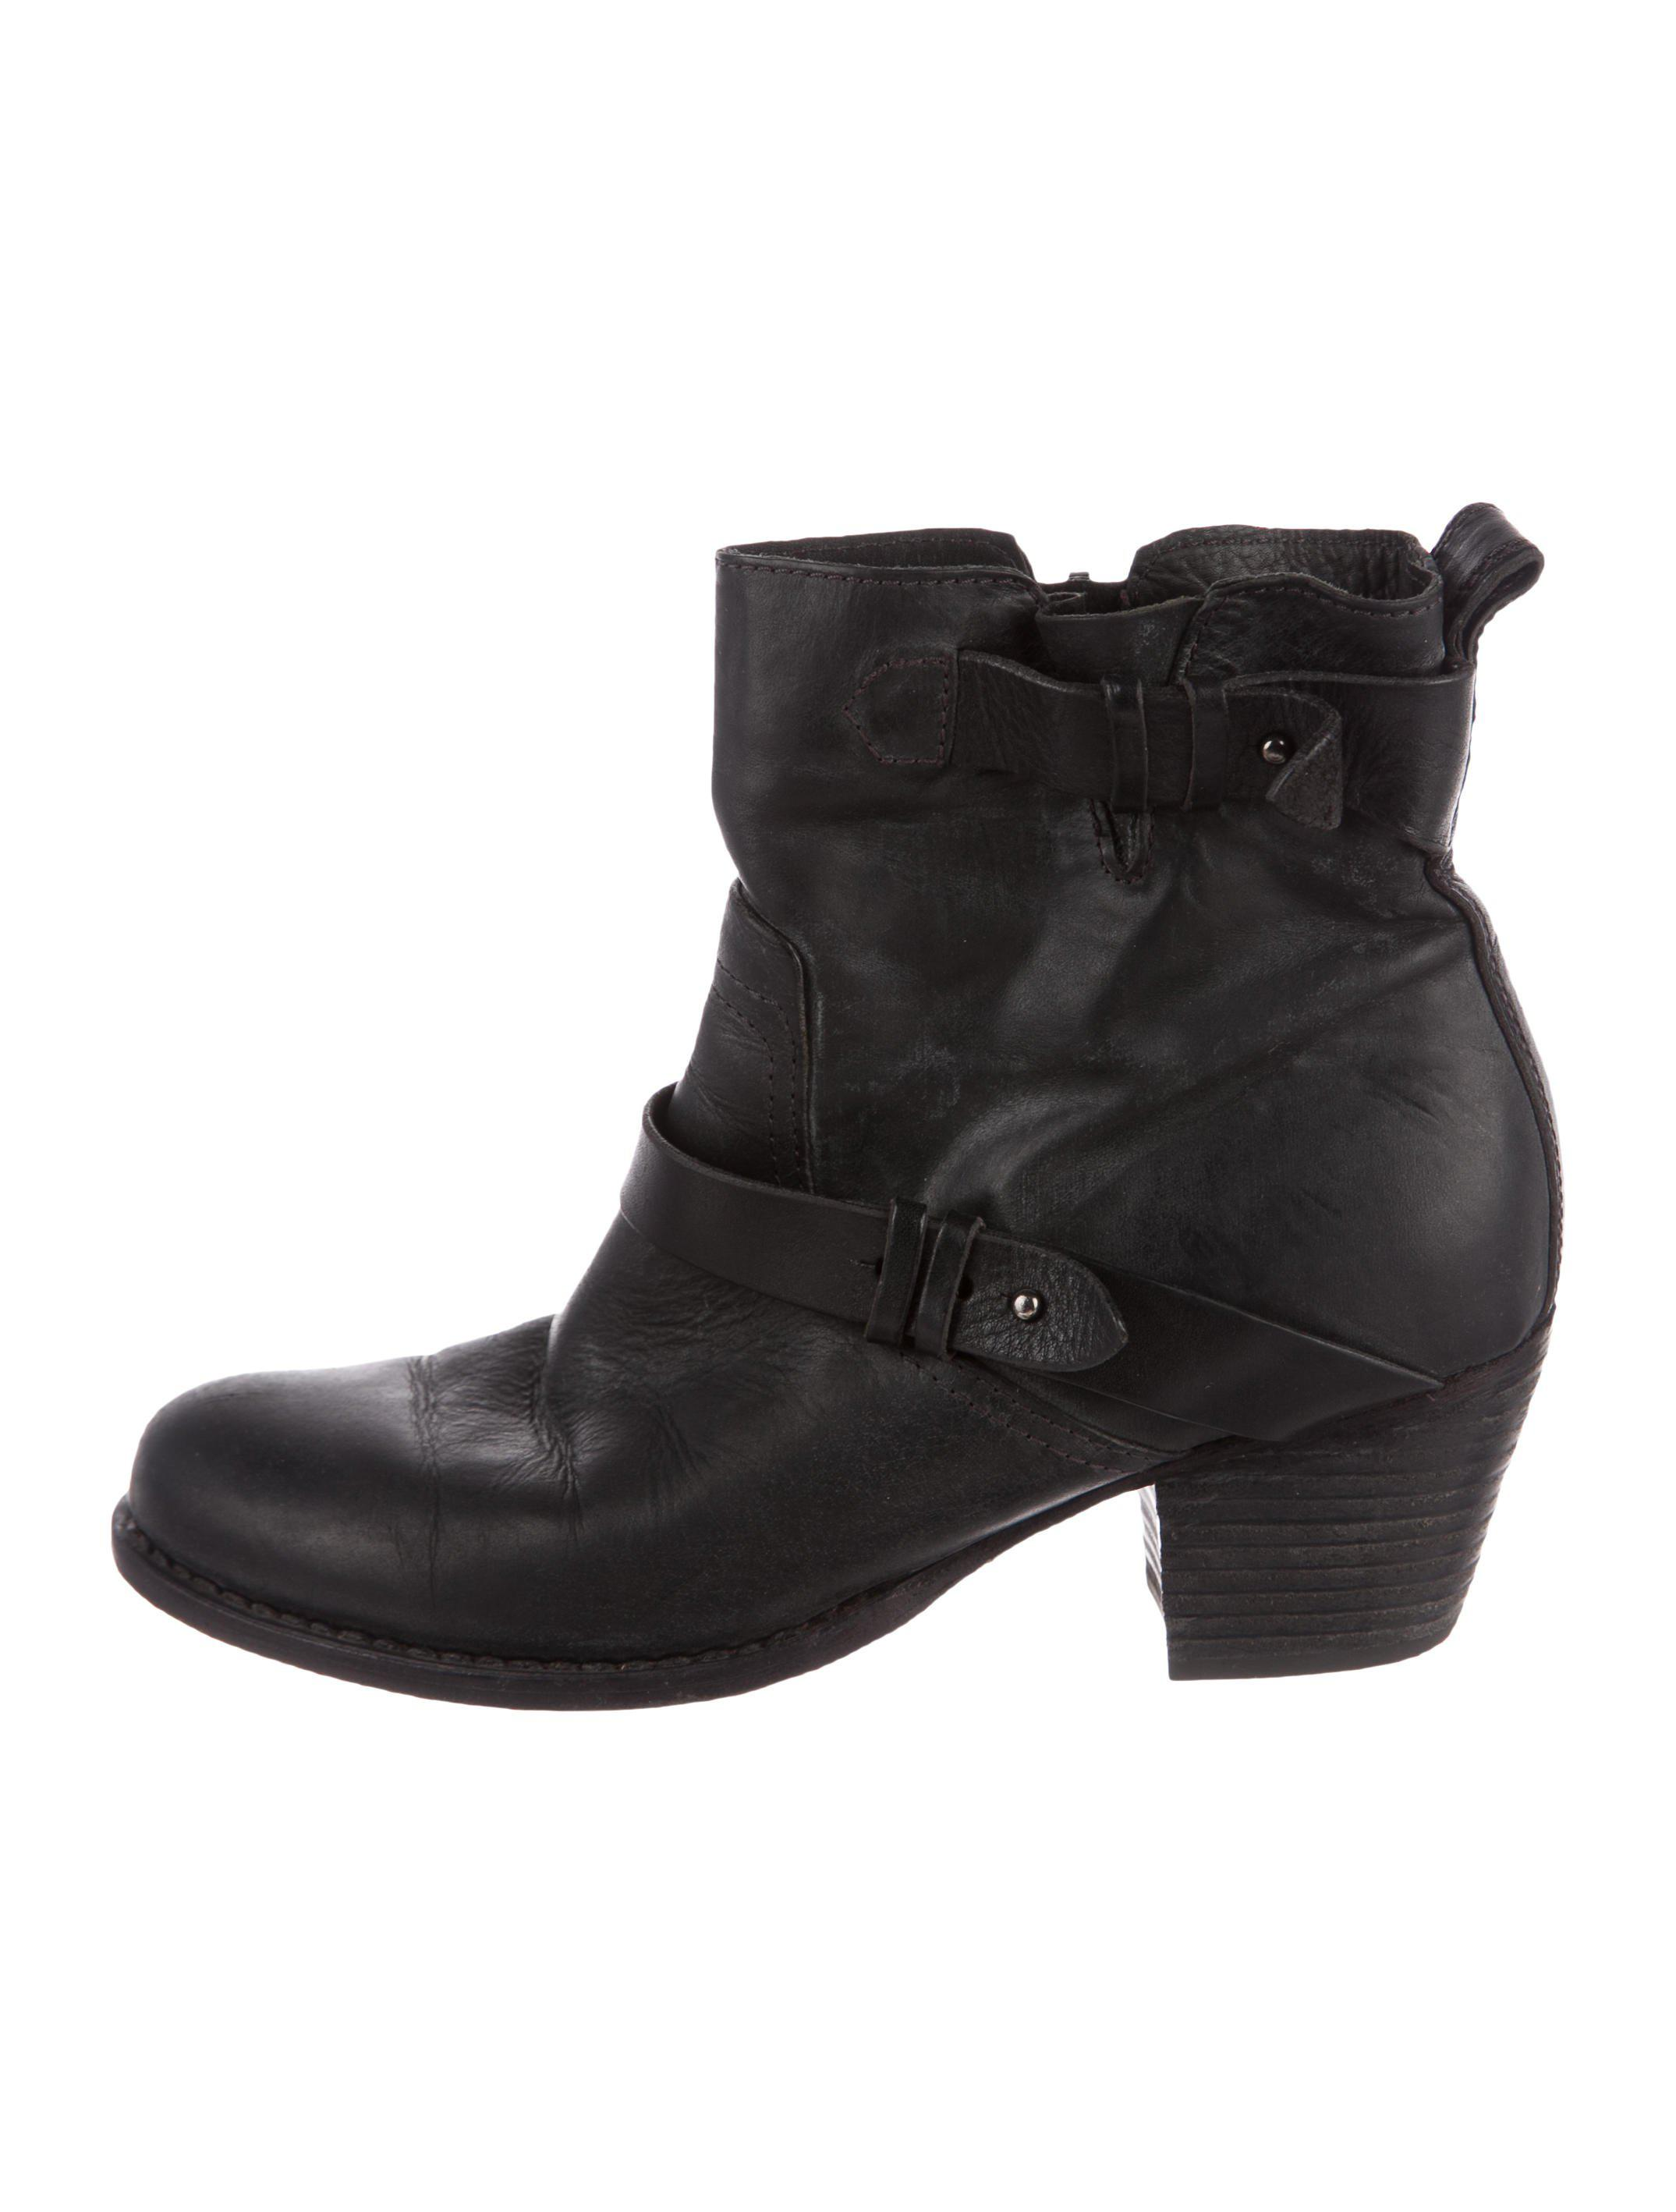 Rag & Bone Patent Leather Round-Toe Ankle Boots clearance Cheapest outlet fast delivery eastbay for sale buy cheap 2014 unisex cheap looking for CI8QMb